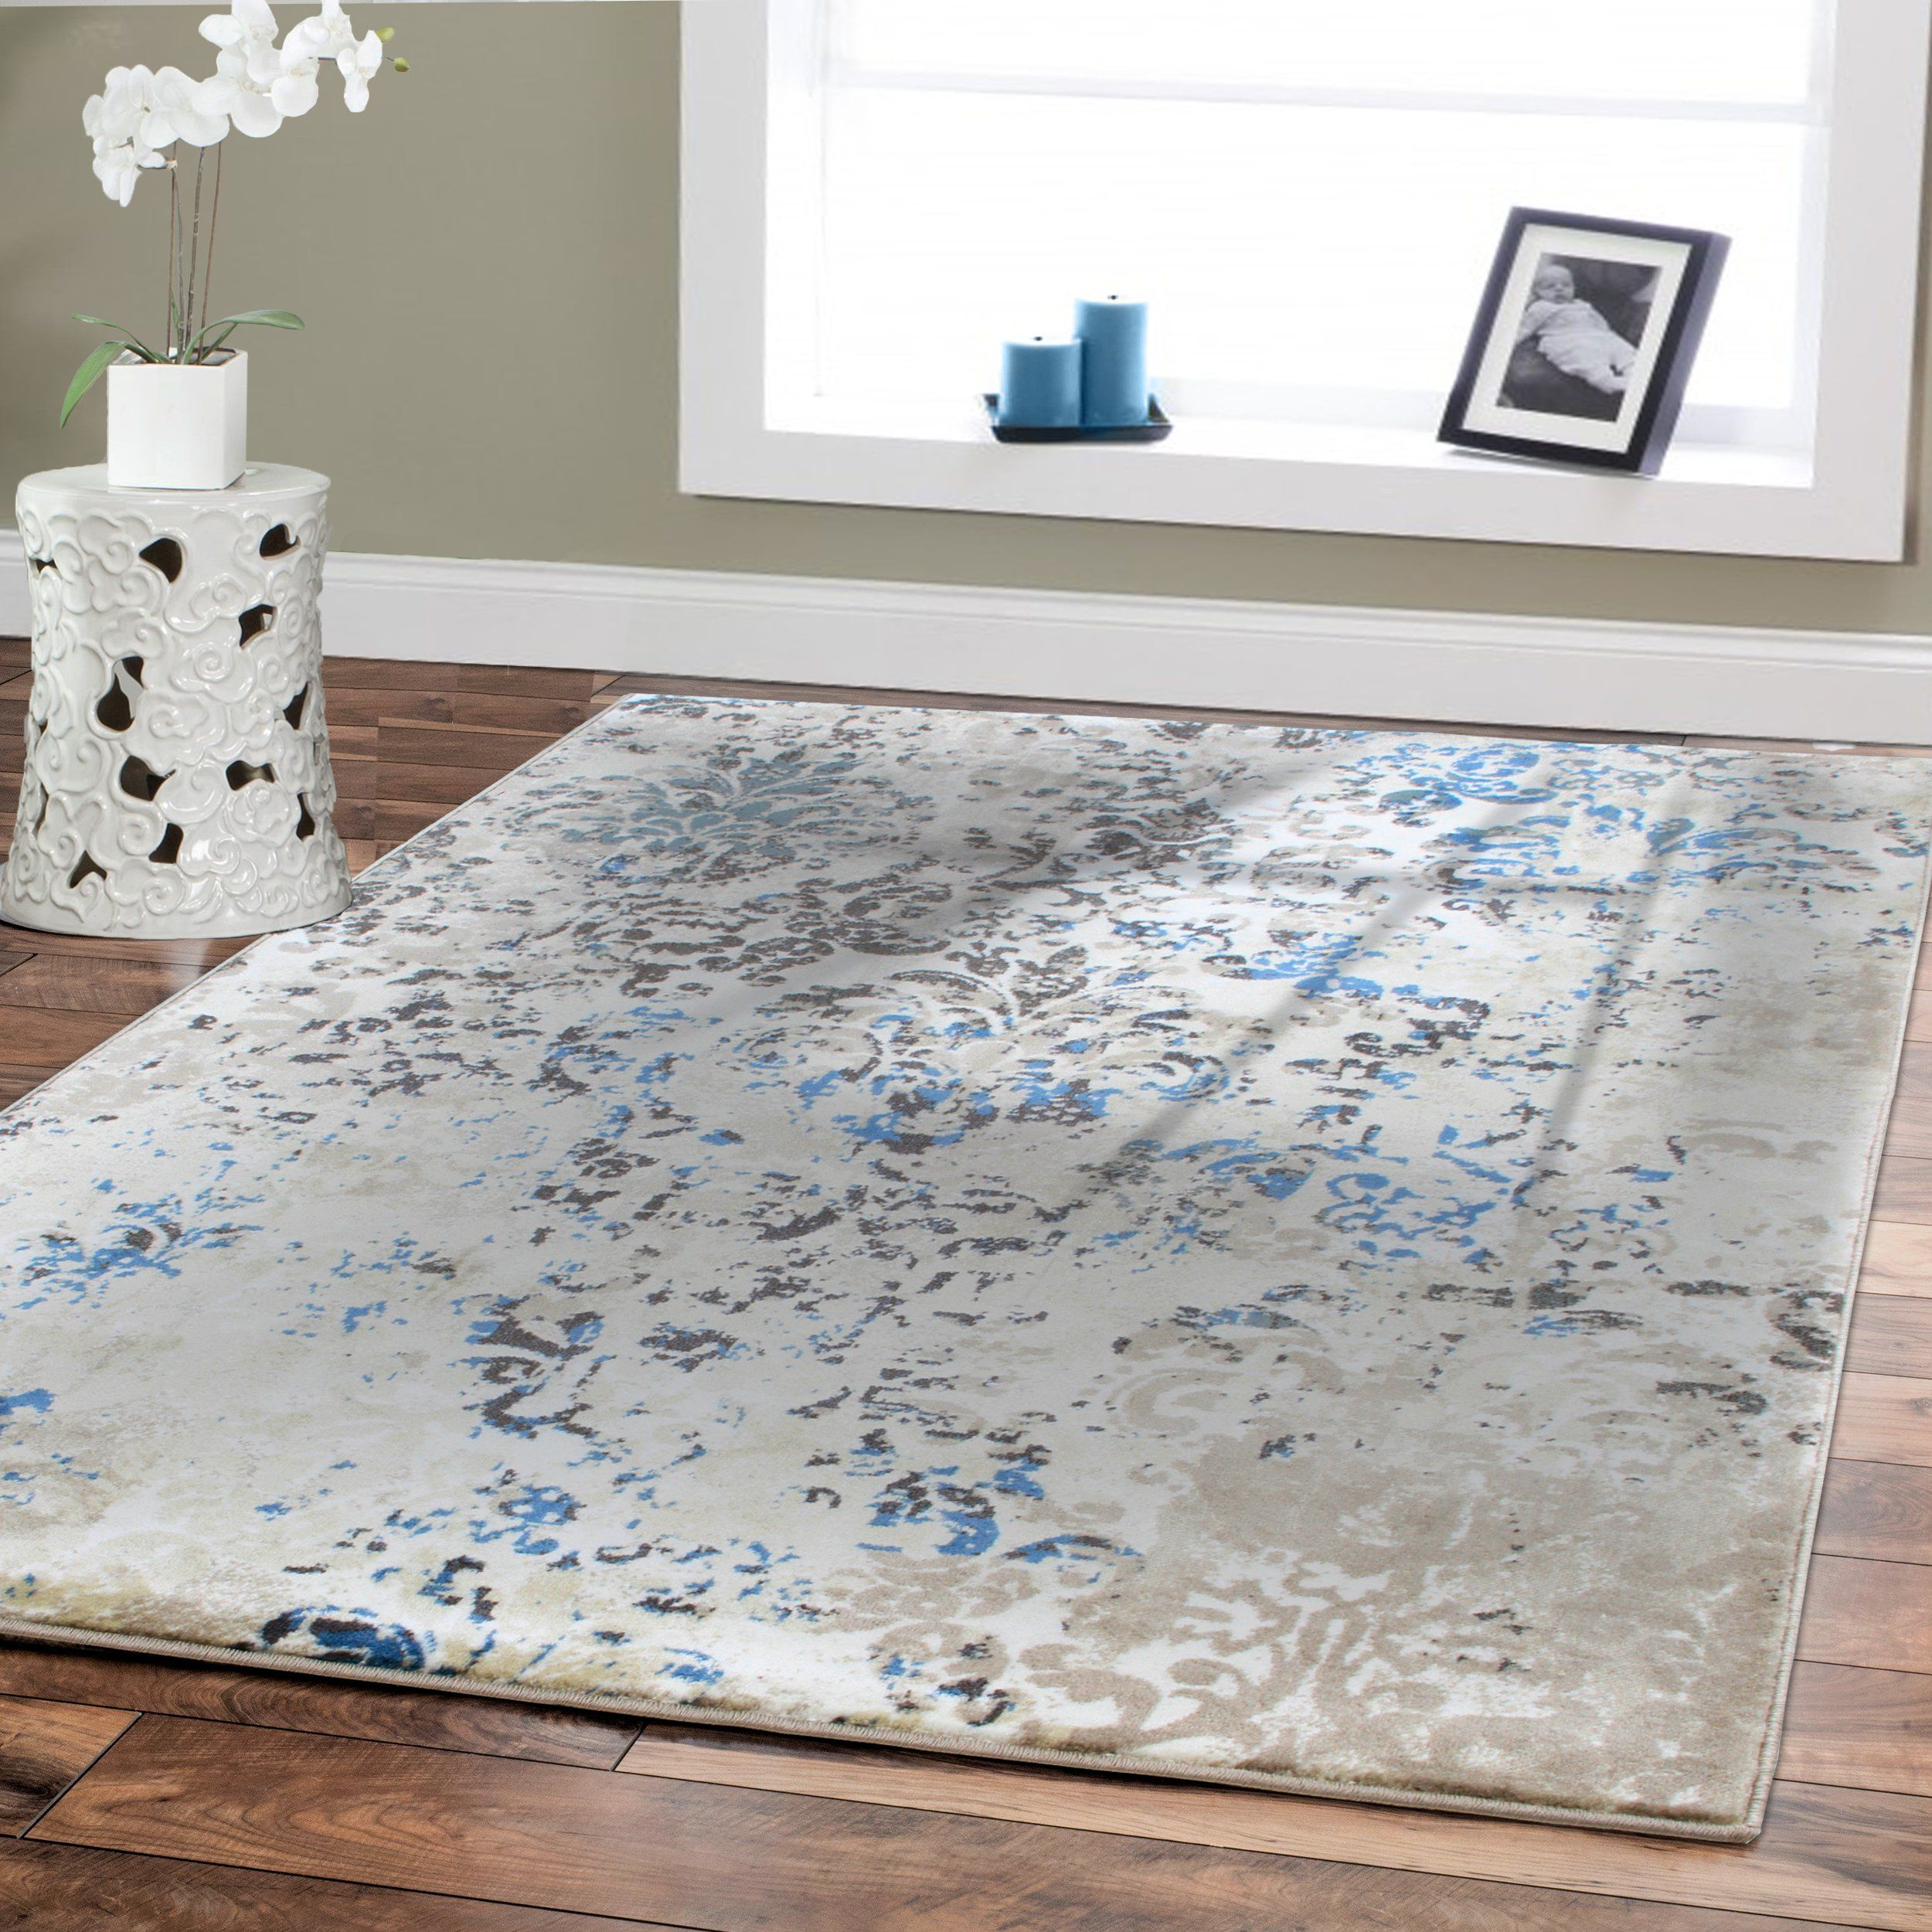 Rug Sets For Living Rooms Premium Rug Large Rugs For Dining Rooms 8 By 11 Blue Beige Brown